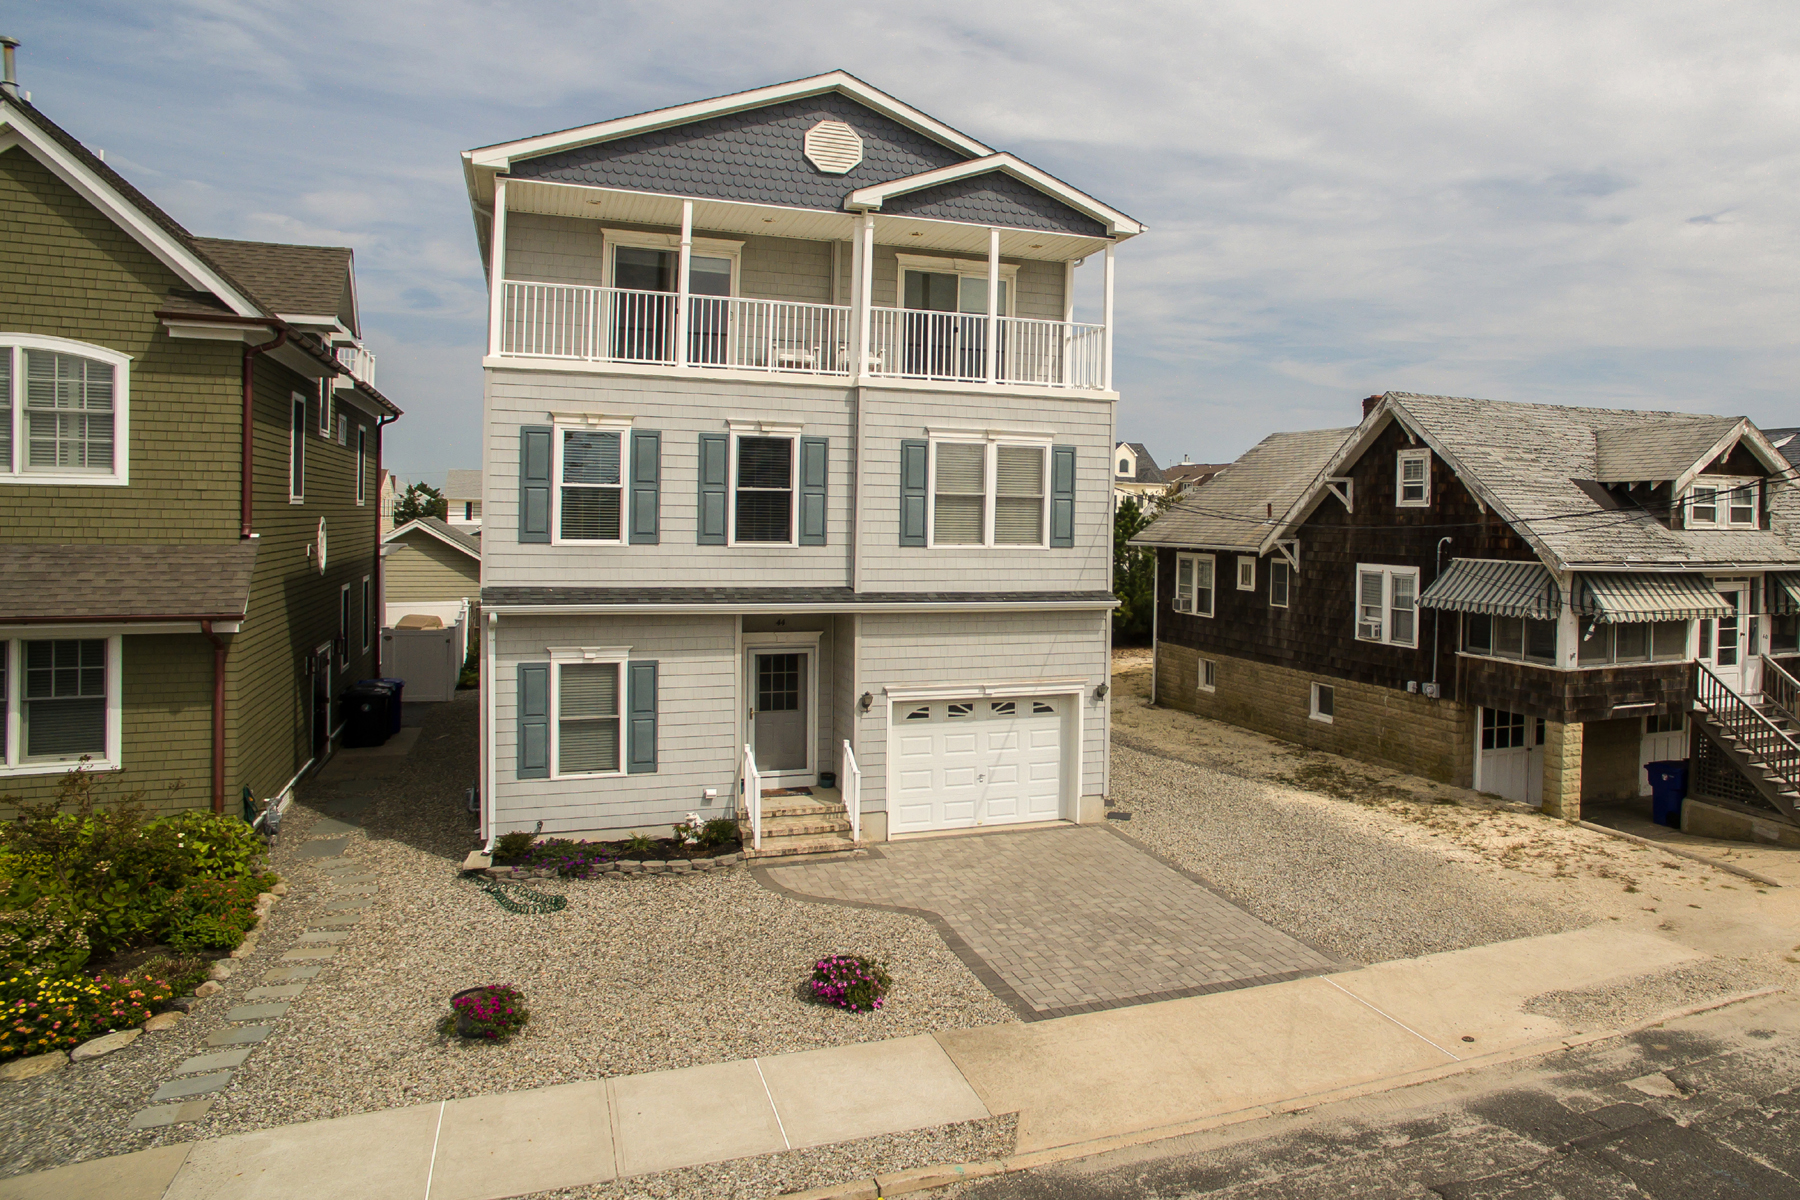 Maison unifamiliale pour l Vente à Custom Built Ocean Block Home 44 3rd Ave Normandy Beach, New Jersey 08739 États-Unis